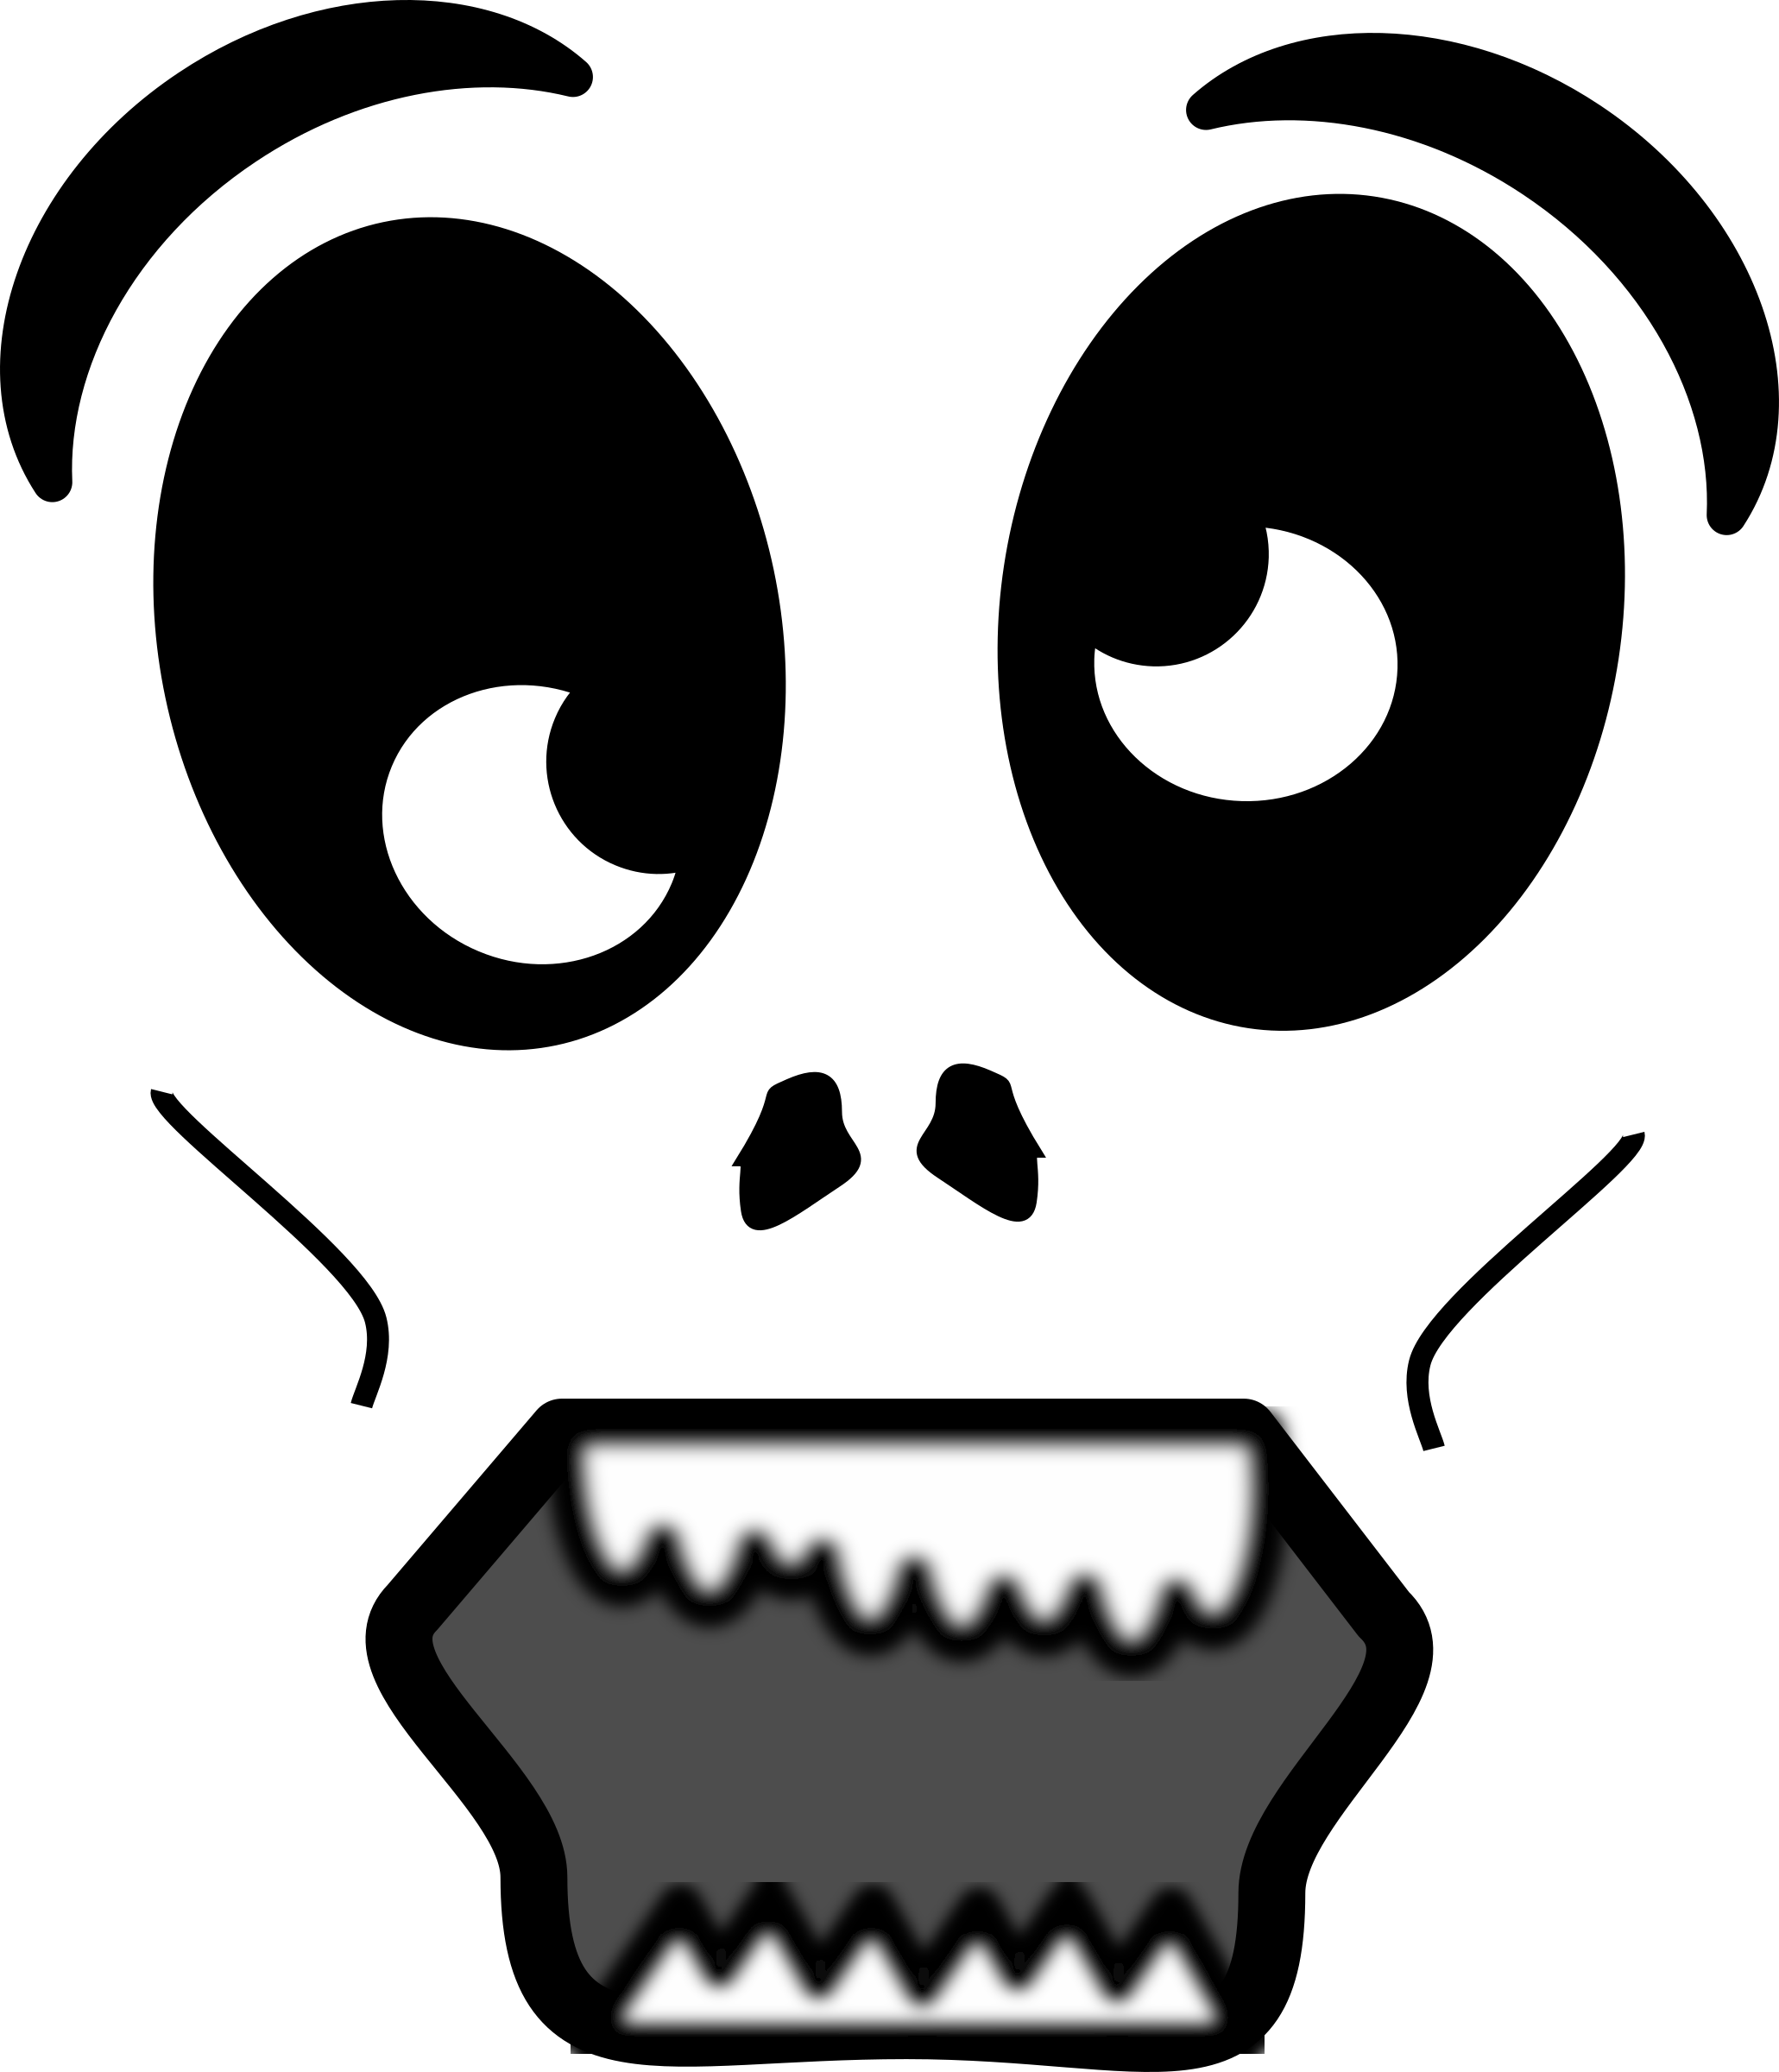 Cartoon Zombie Face by FunDraw_dot_com